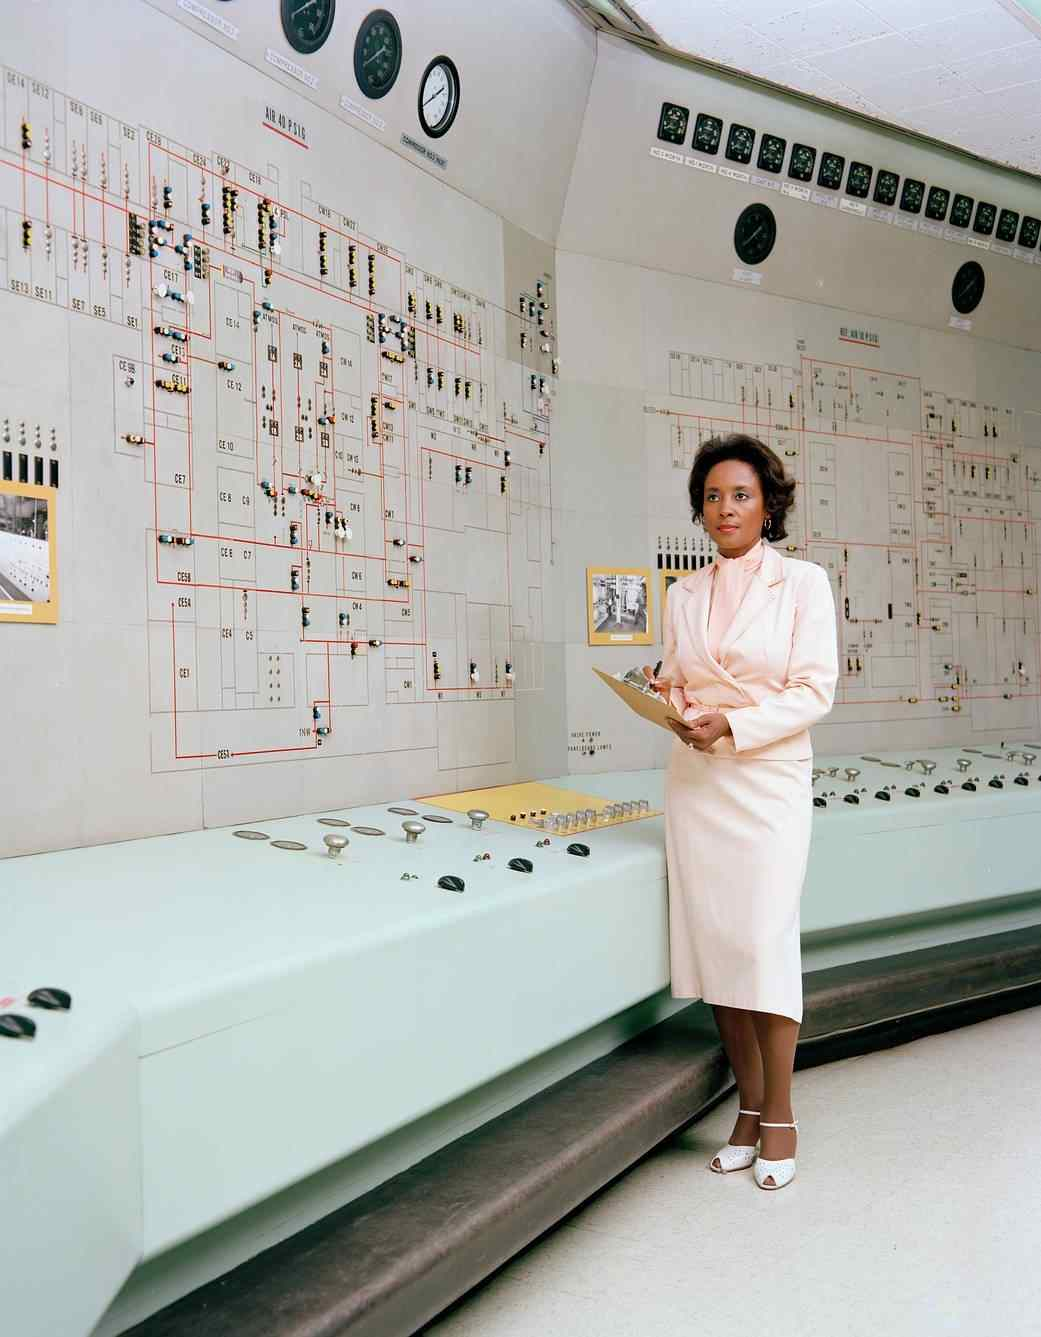 Astronaut Abby_Space and STEM Role Models for Girls_Annie Easley Image